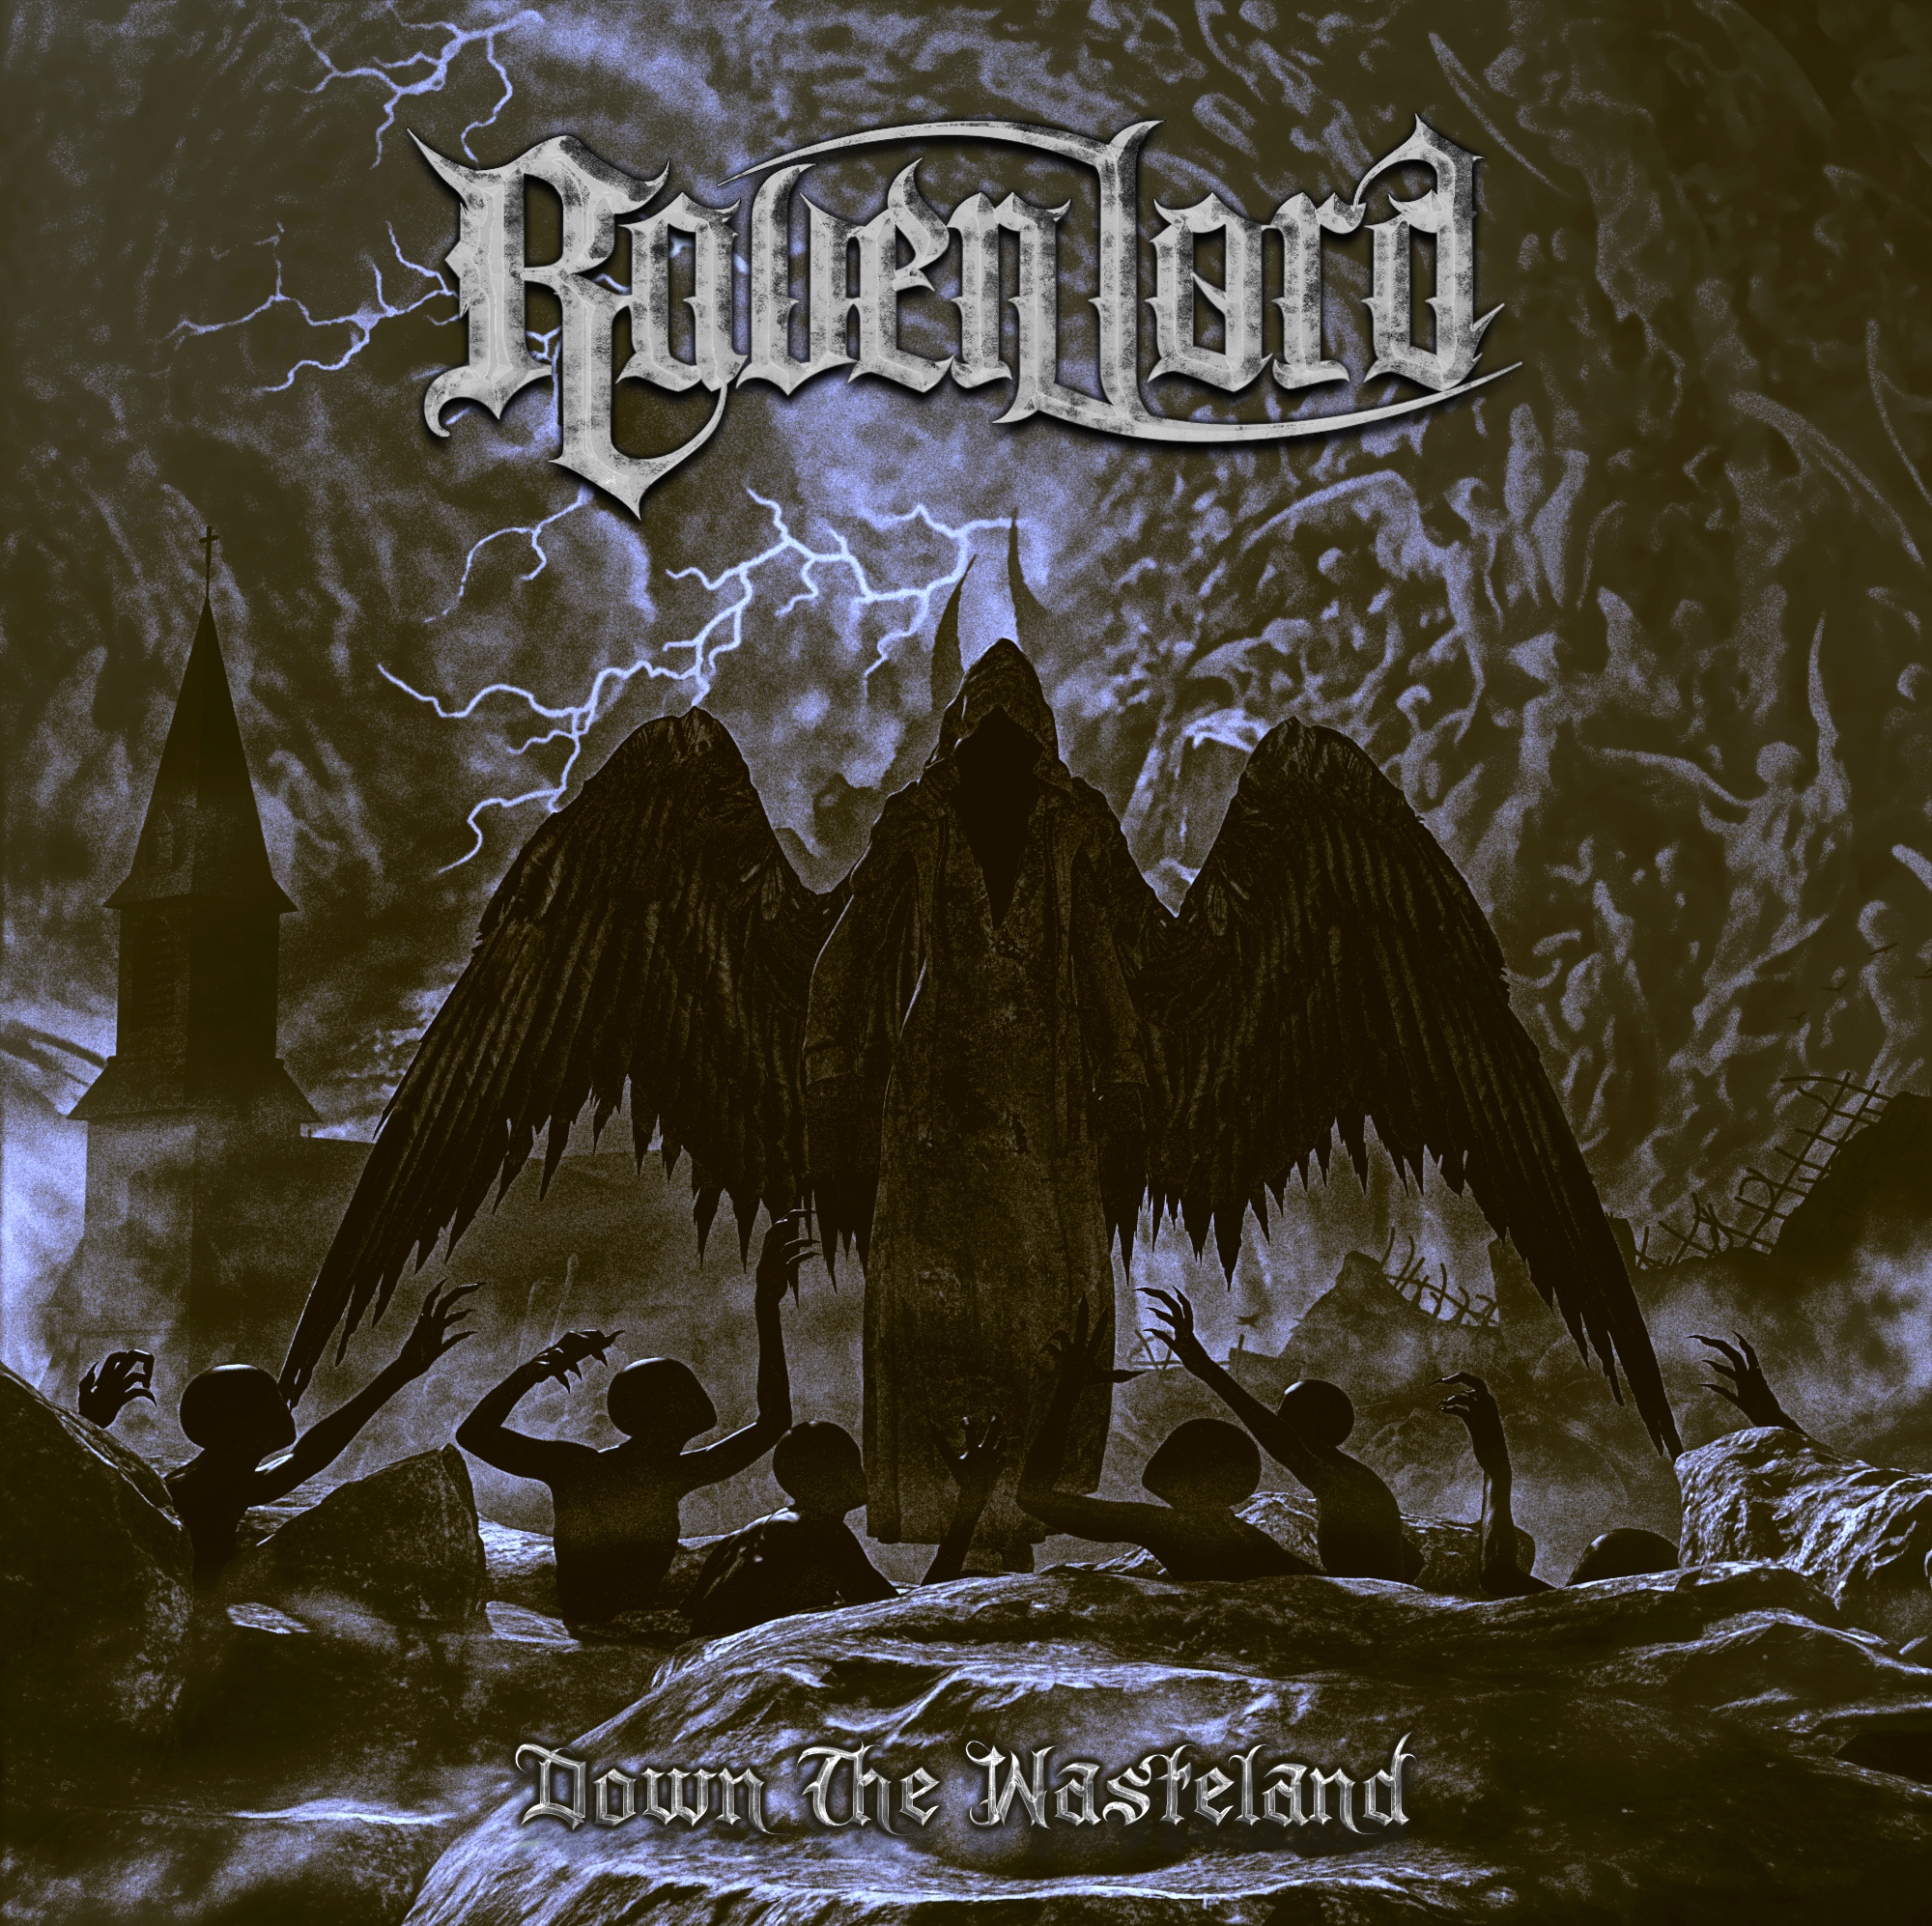 Raven Lord – Down the Wasteland